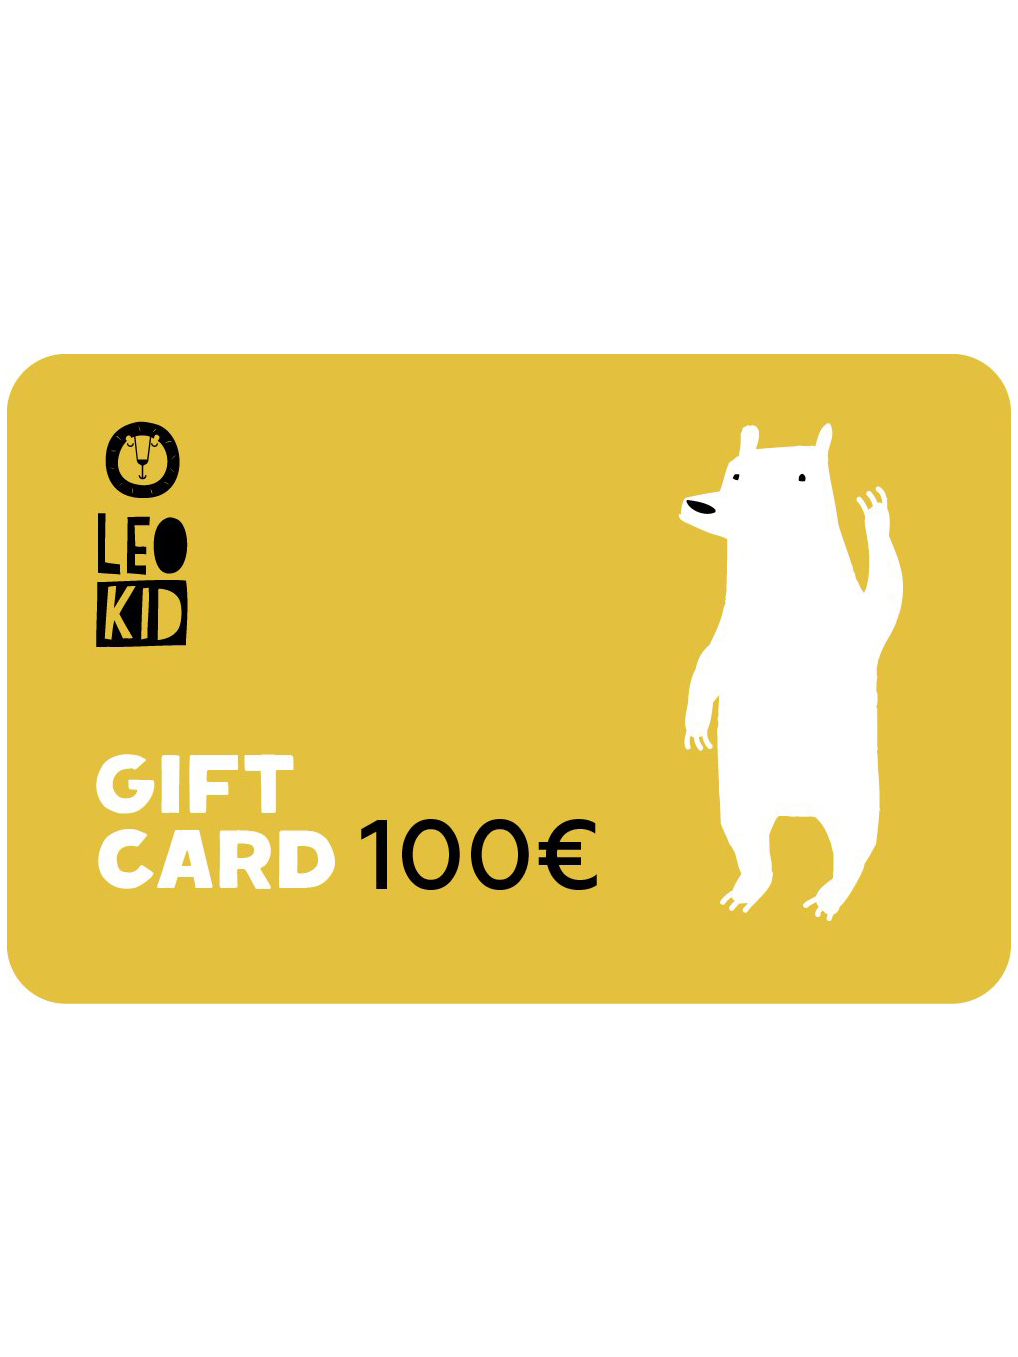 Electronic gift card 100€